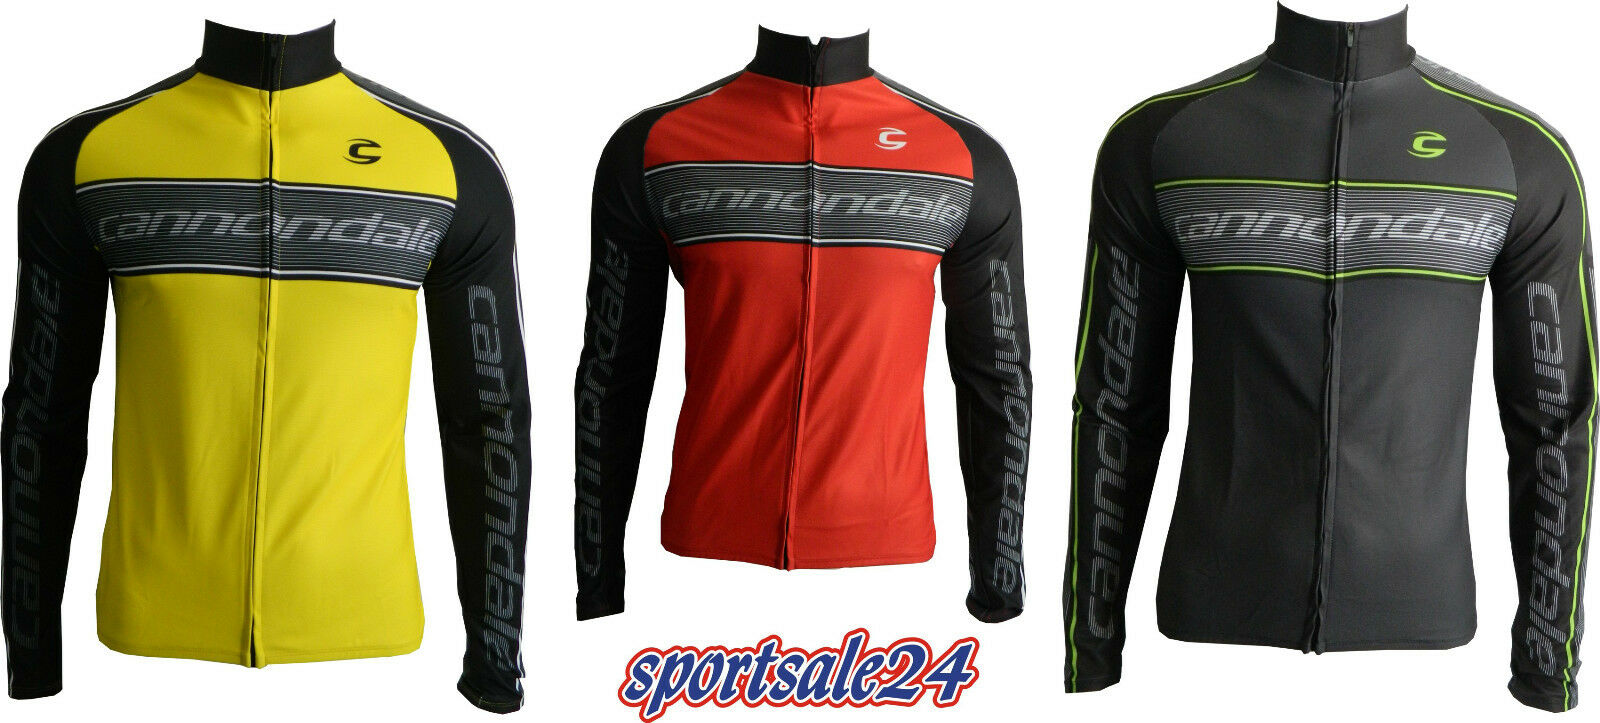 CANNONDALE performance 2 Pro Long Sleeve JerseyINVERNOMAGLIA  5m122NUOVO